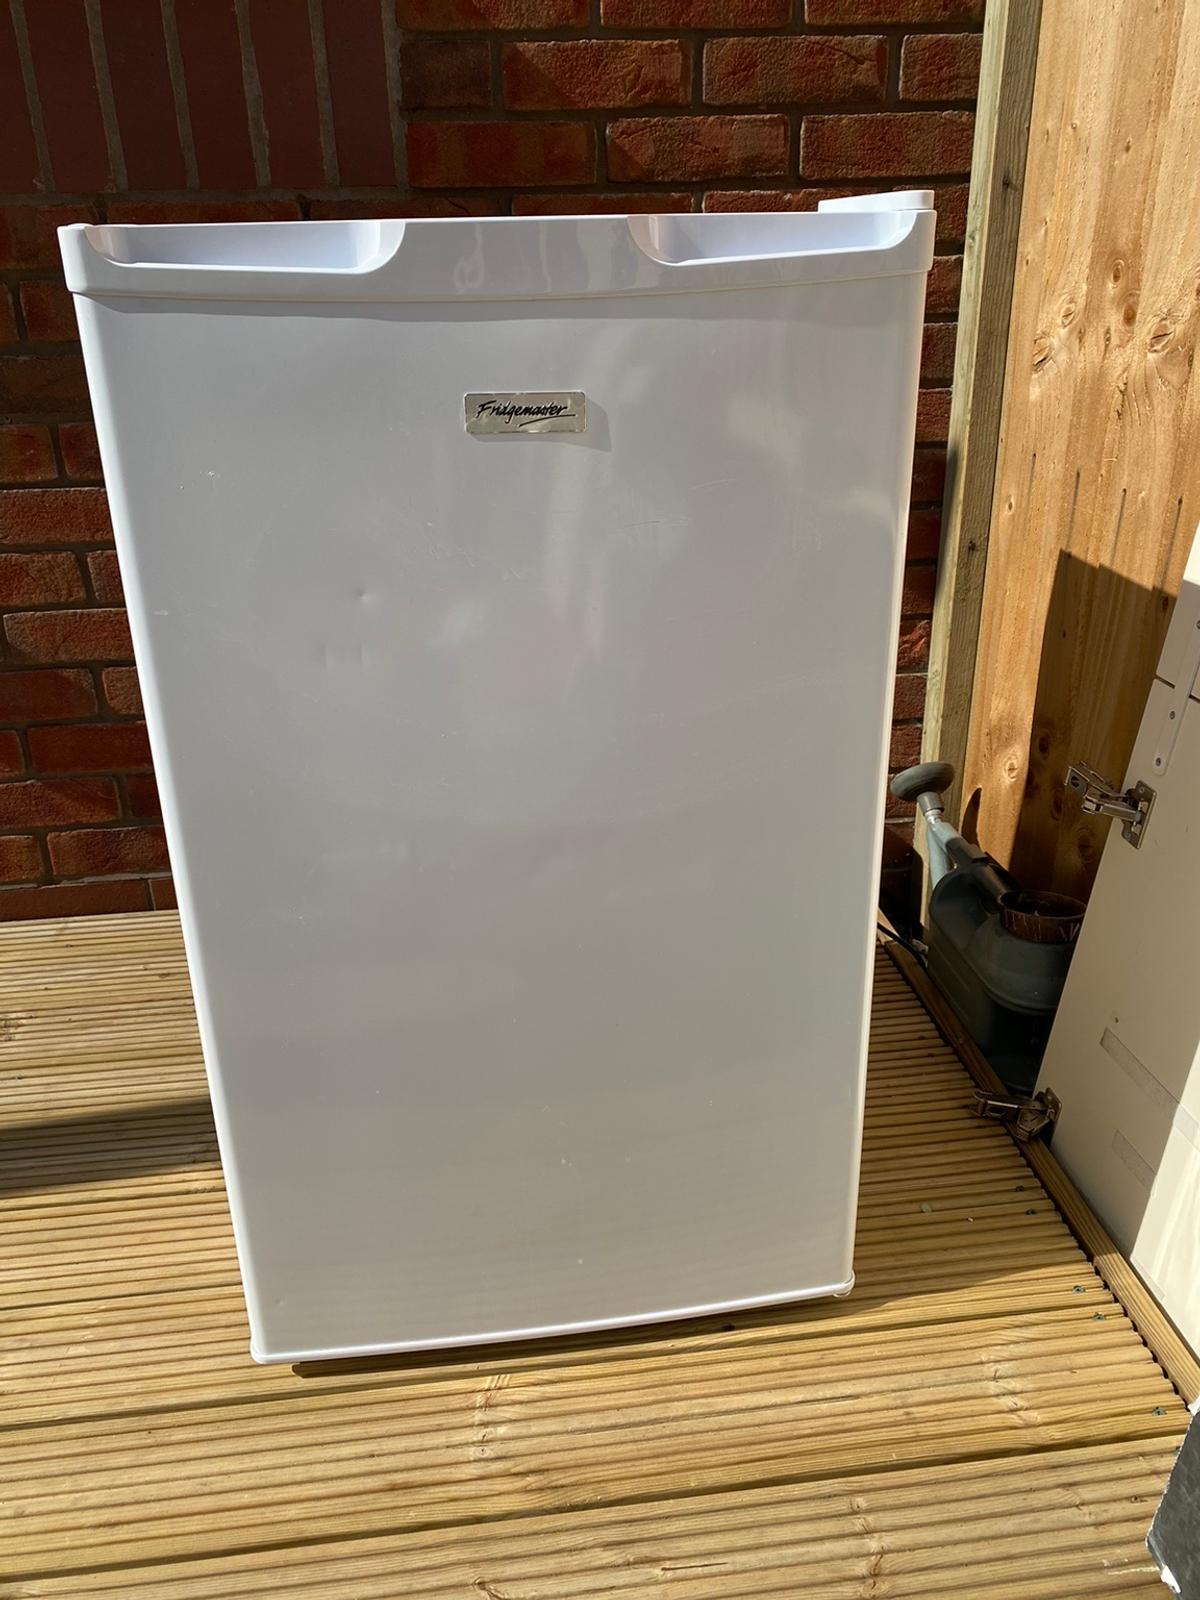 Fridge 550x 550 x 850 h Freezer 500 x 500 x 850 h Both in good condition and working order £50 each Can sell seperately New kitchen forces sale